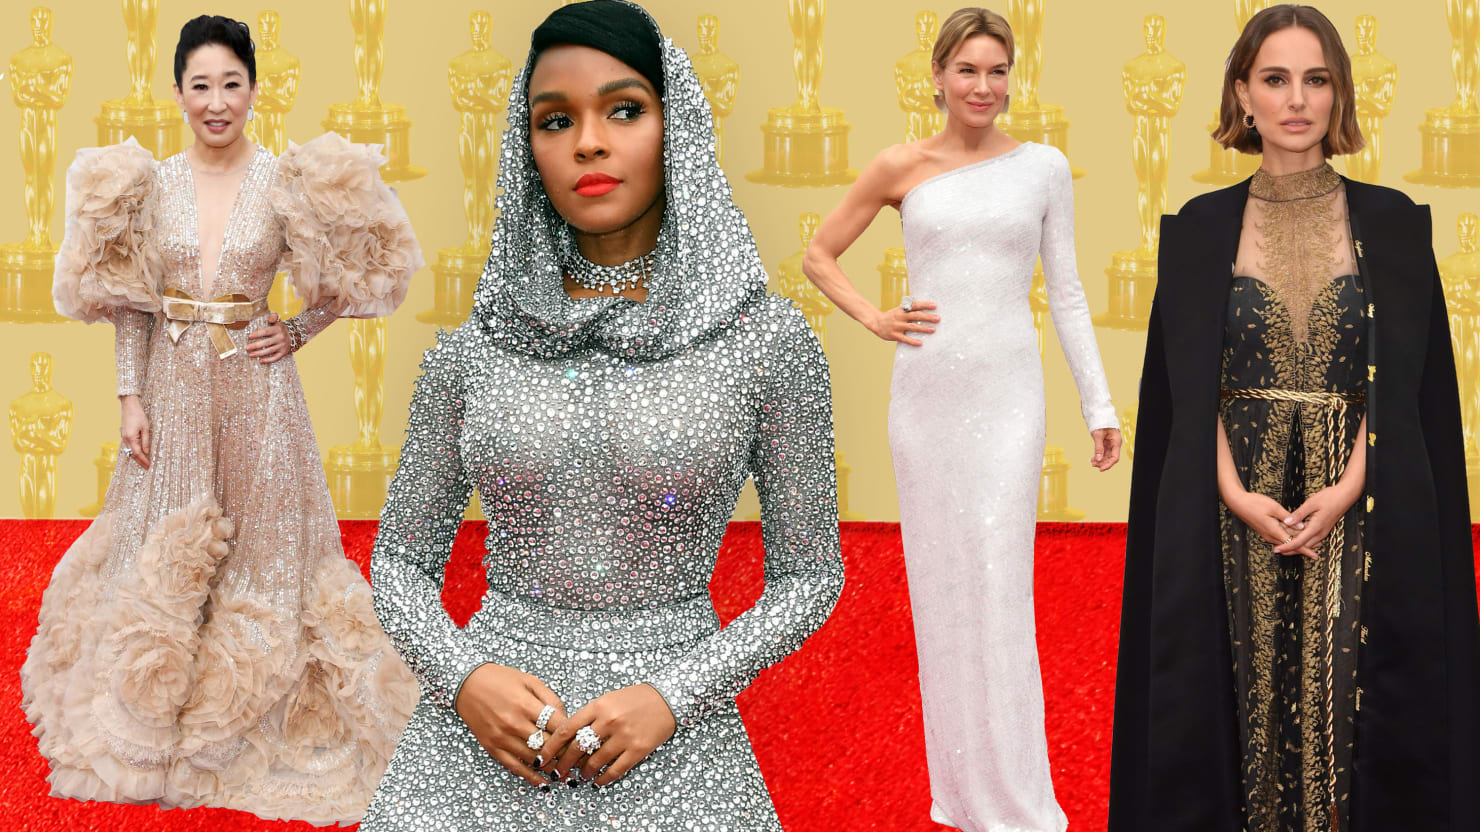 The Oscars Red Carpet Served Up Glamor—and So Much Drama